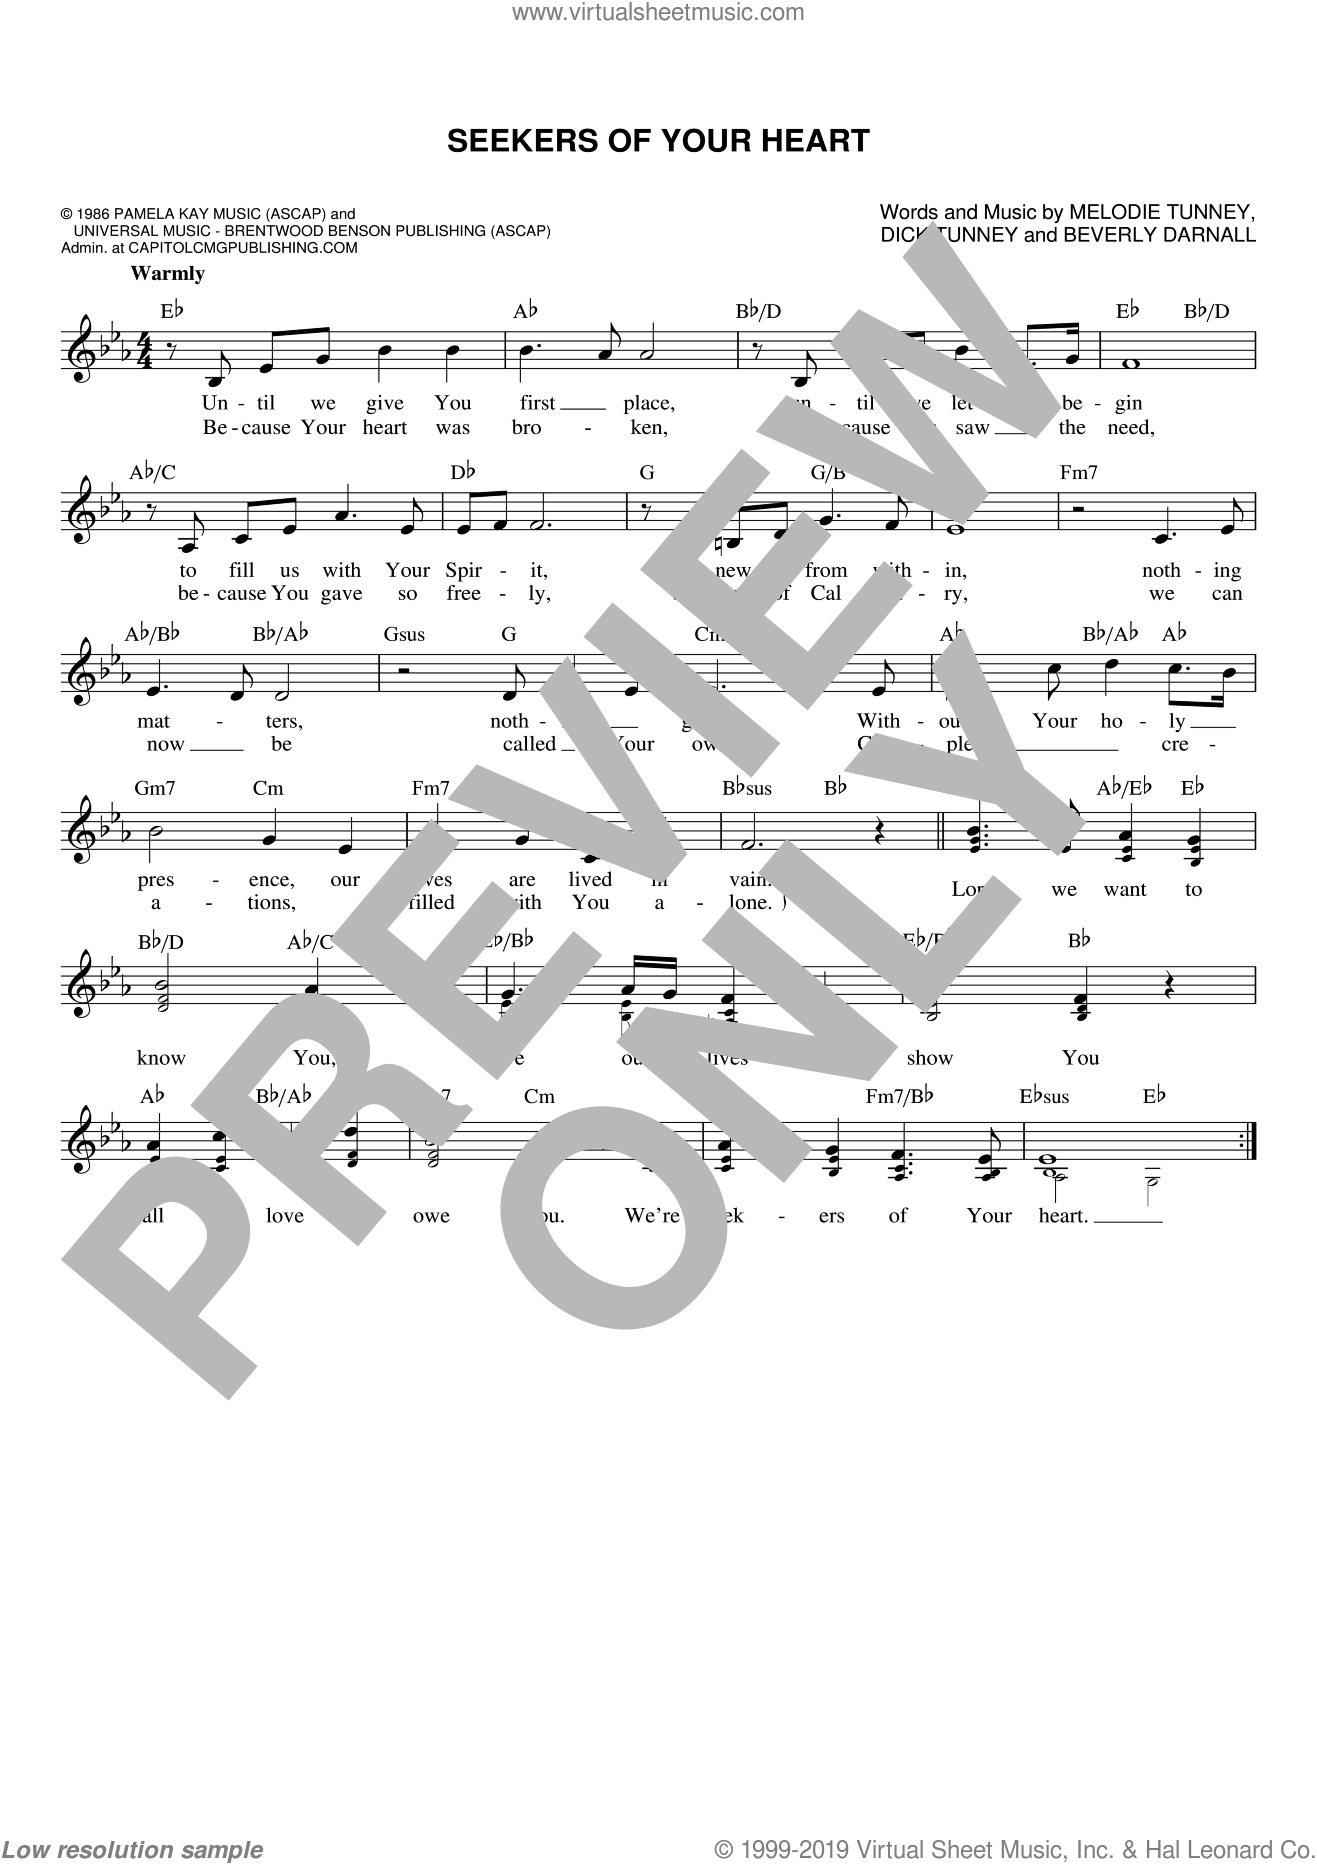 Seekers Of Your Heart sheet music for voice and other instruments (fake book) by Dick Tunney, Beverly Darnall and Melodie Tunney, wedding score, intermediate skill level